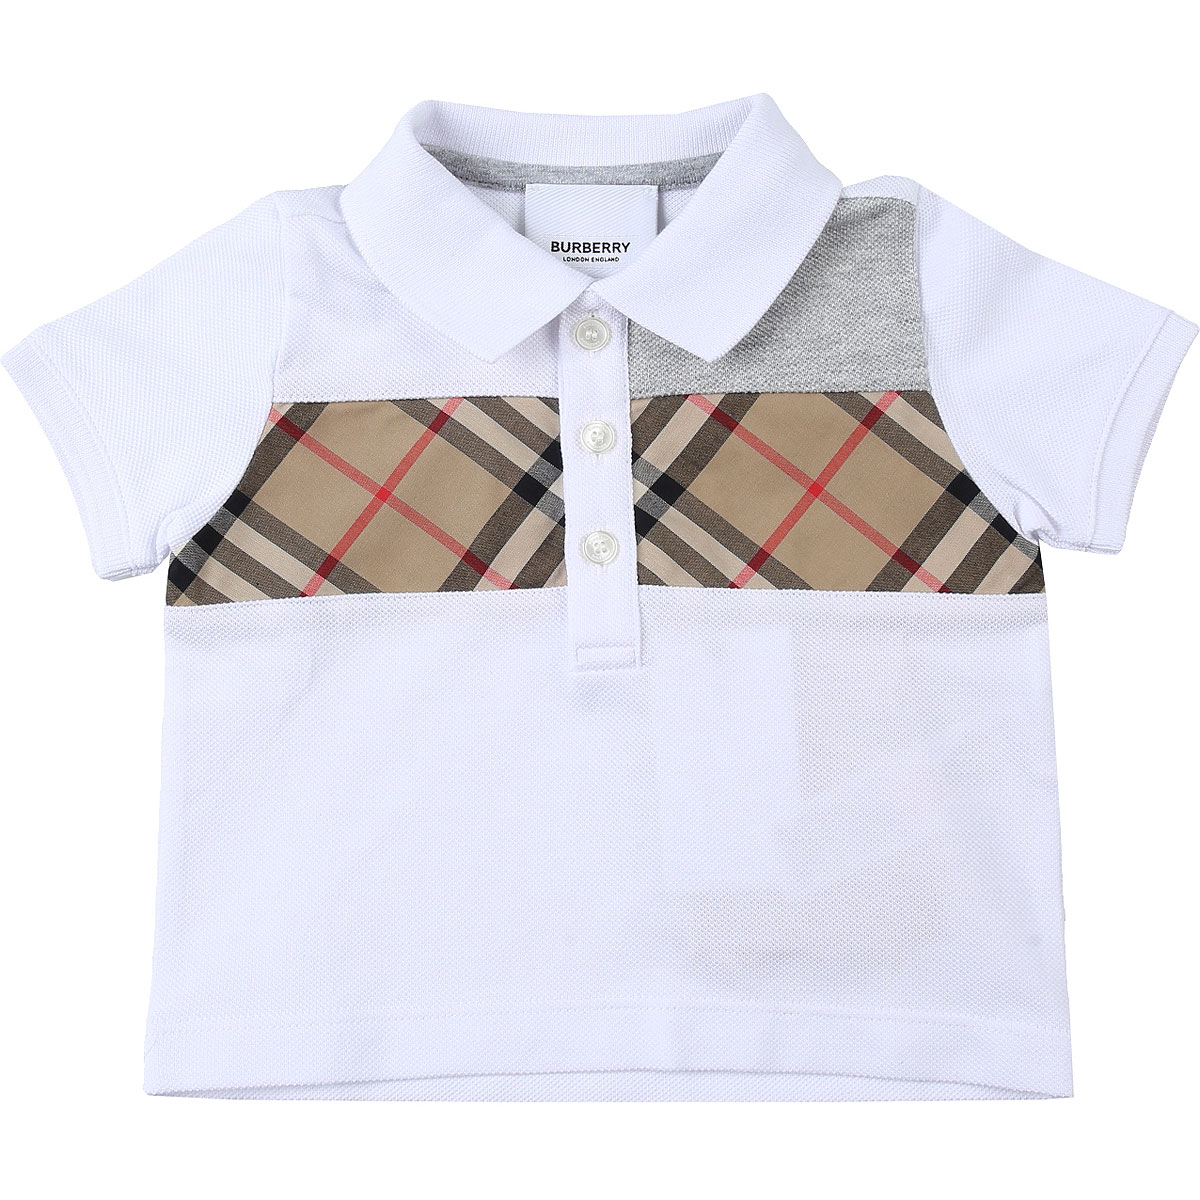 Burberry Baby Polo Shirt for Boys On Sale, White, Cotton, 2019, 12 M 18 M 6M 9 M